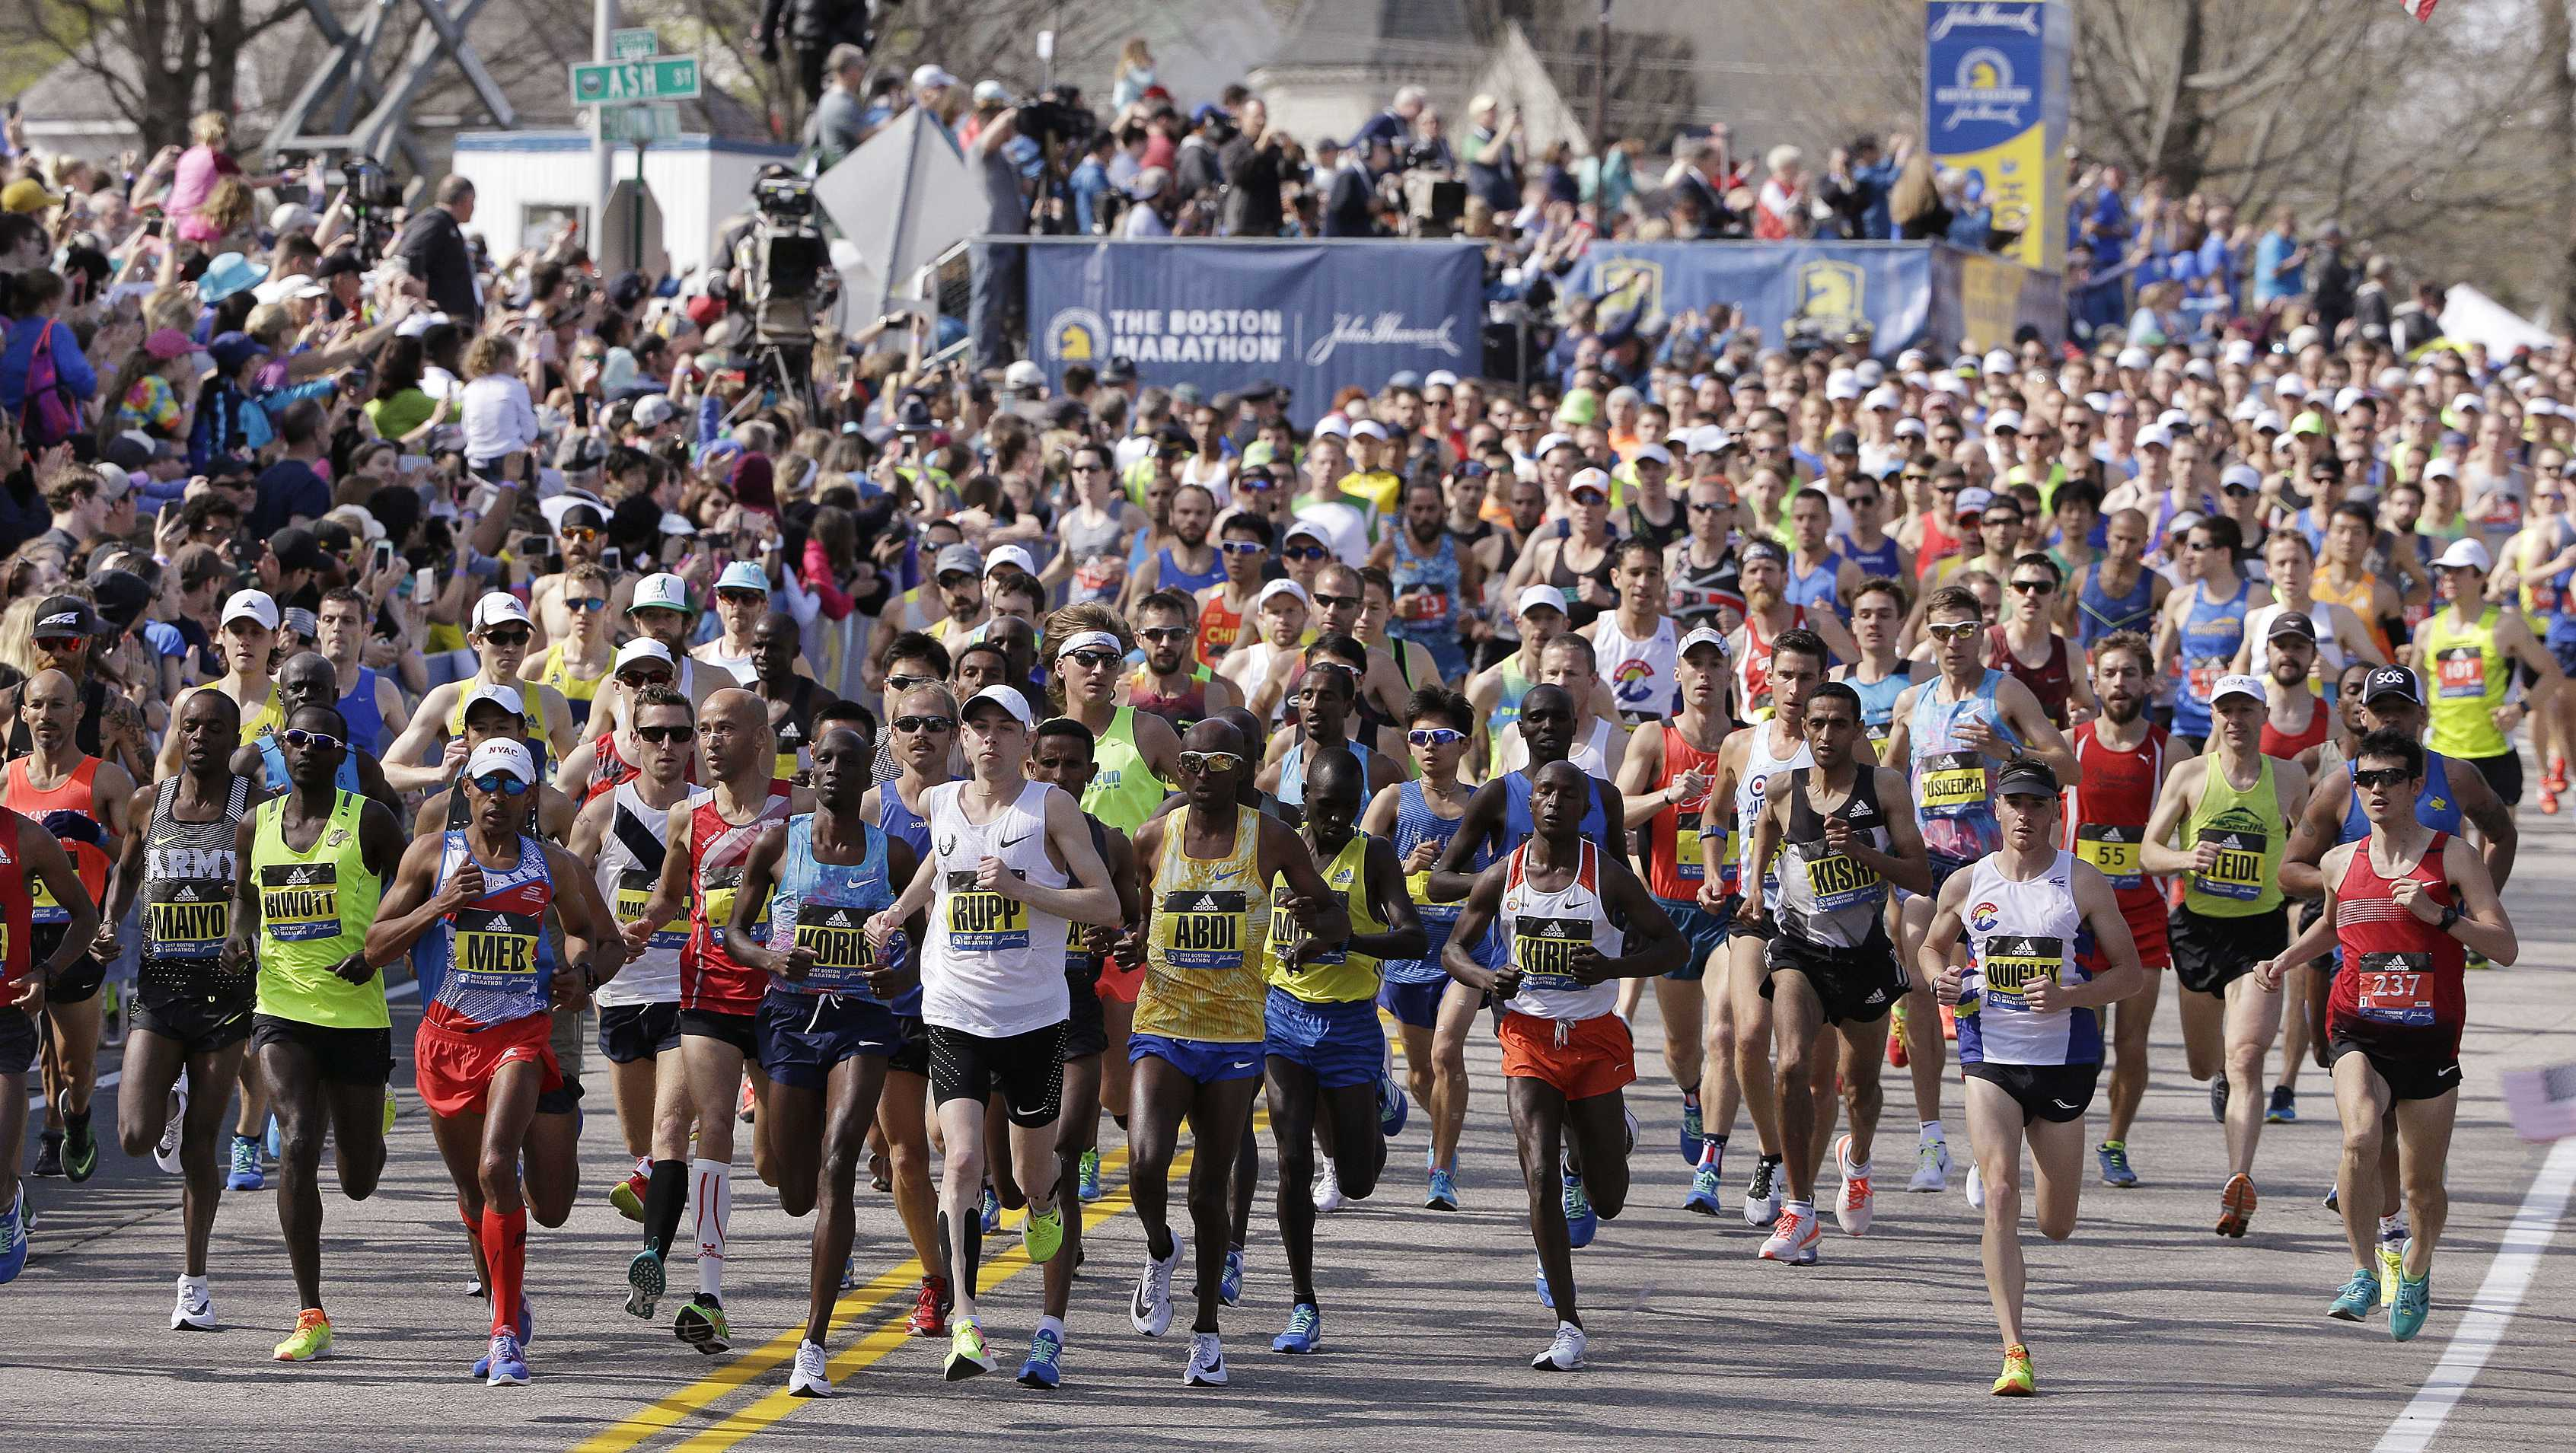 2017 Boston Marathon